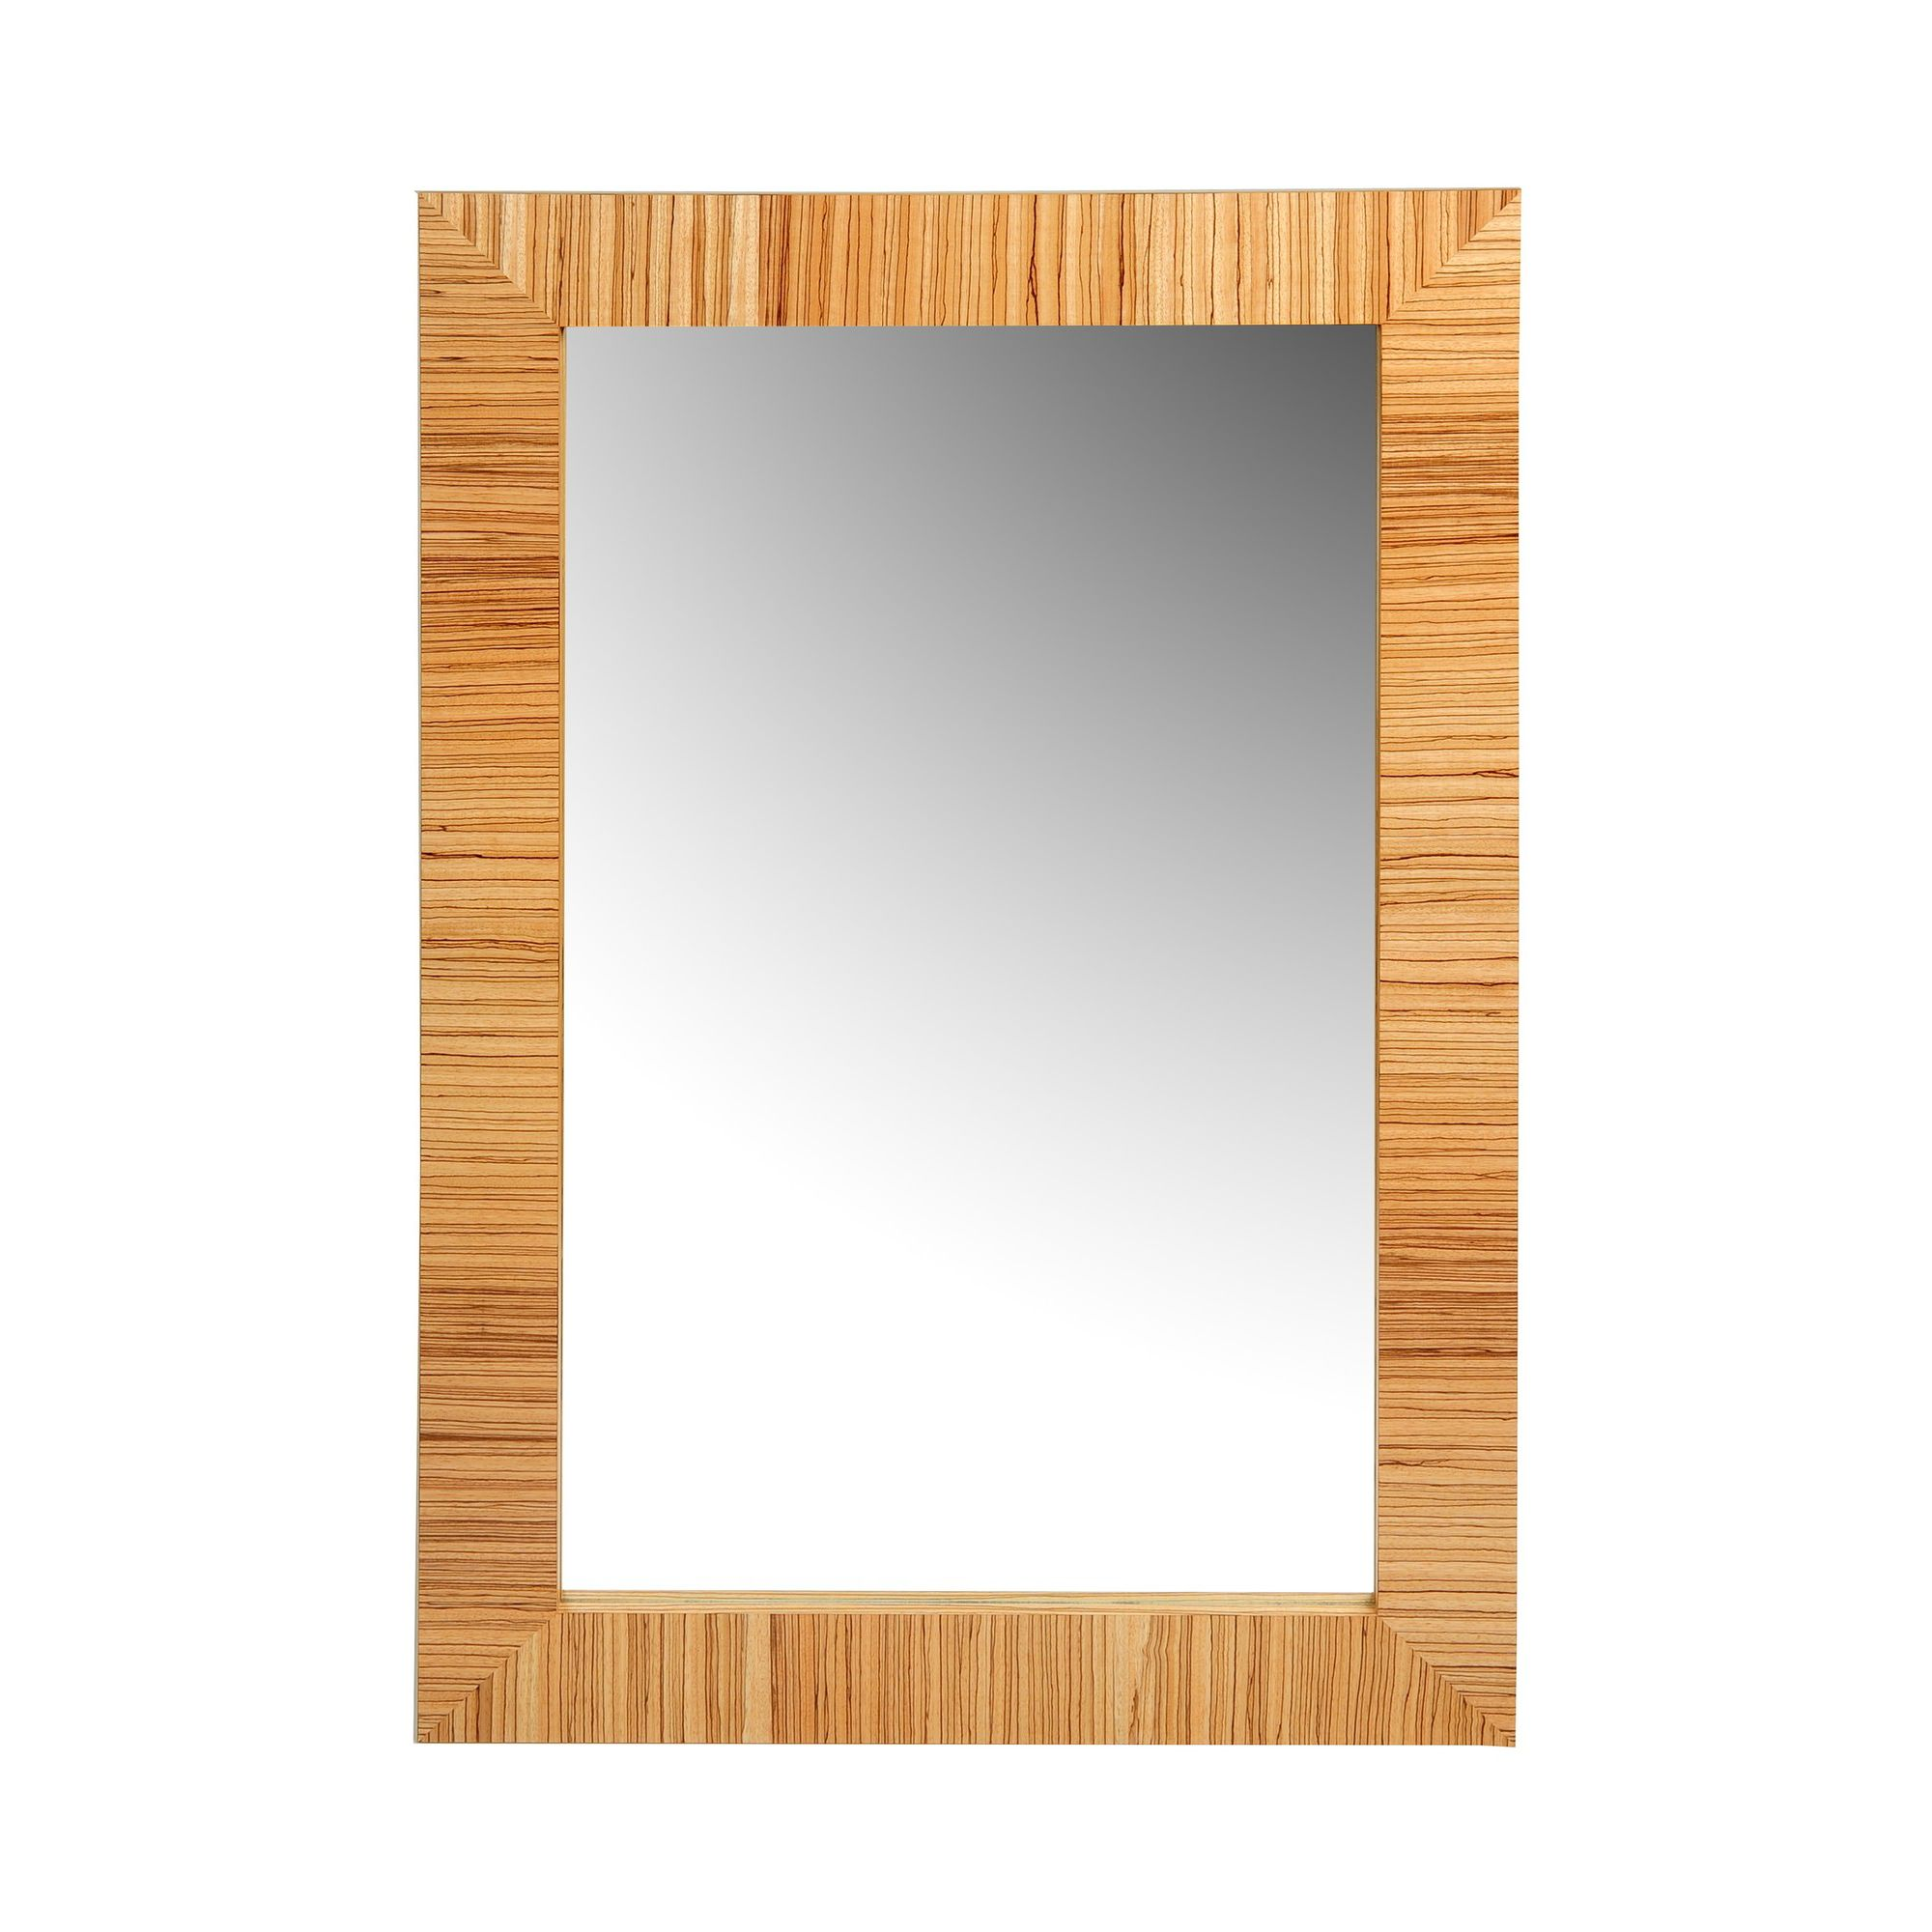 Trefurn Crossband Mirror at Tesco Direct